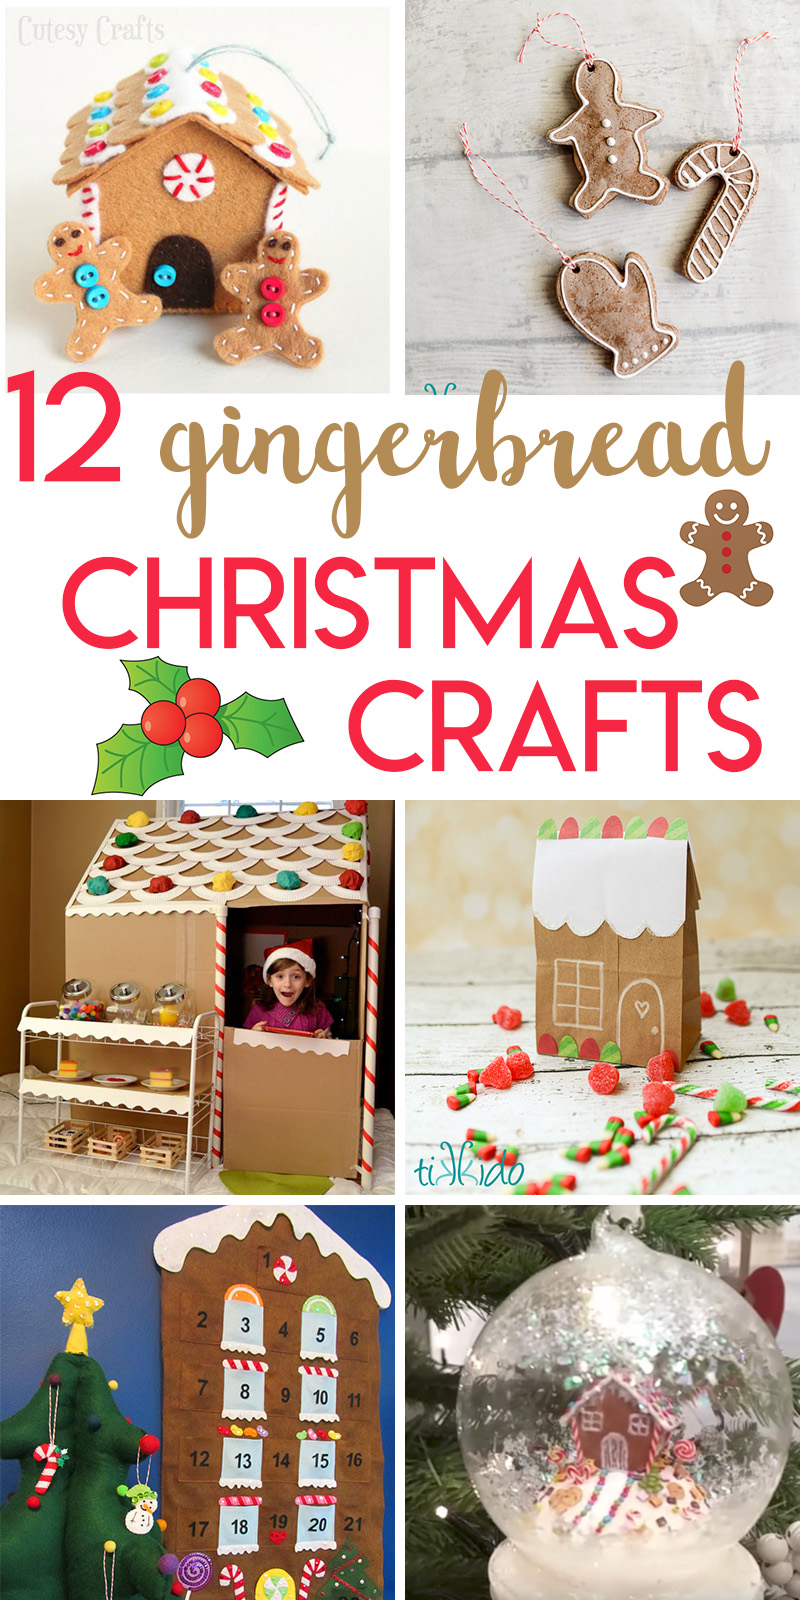 12 gingerbread themed crafts to make for Christmas